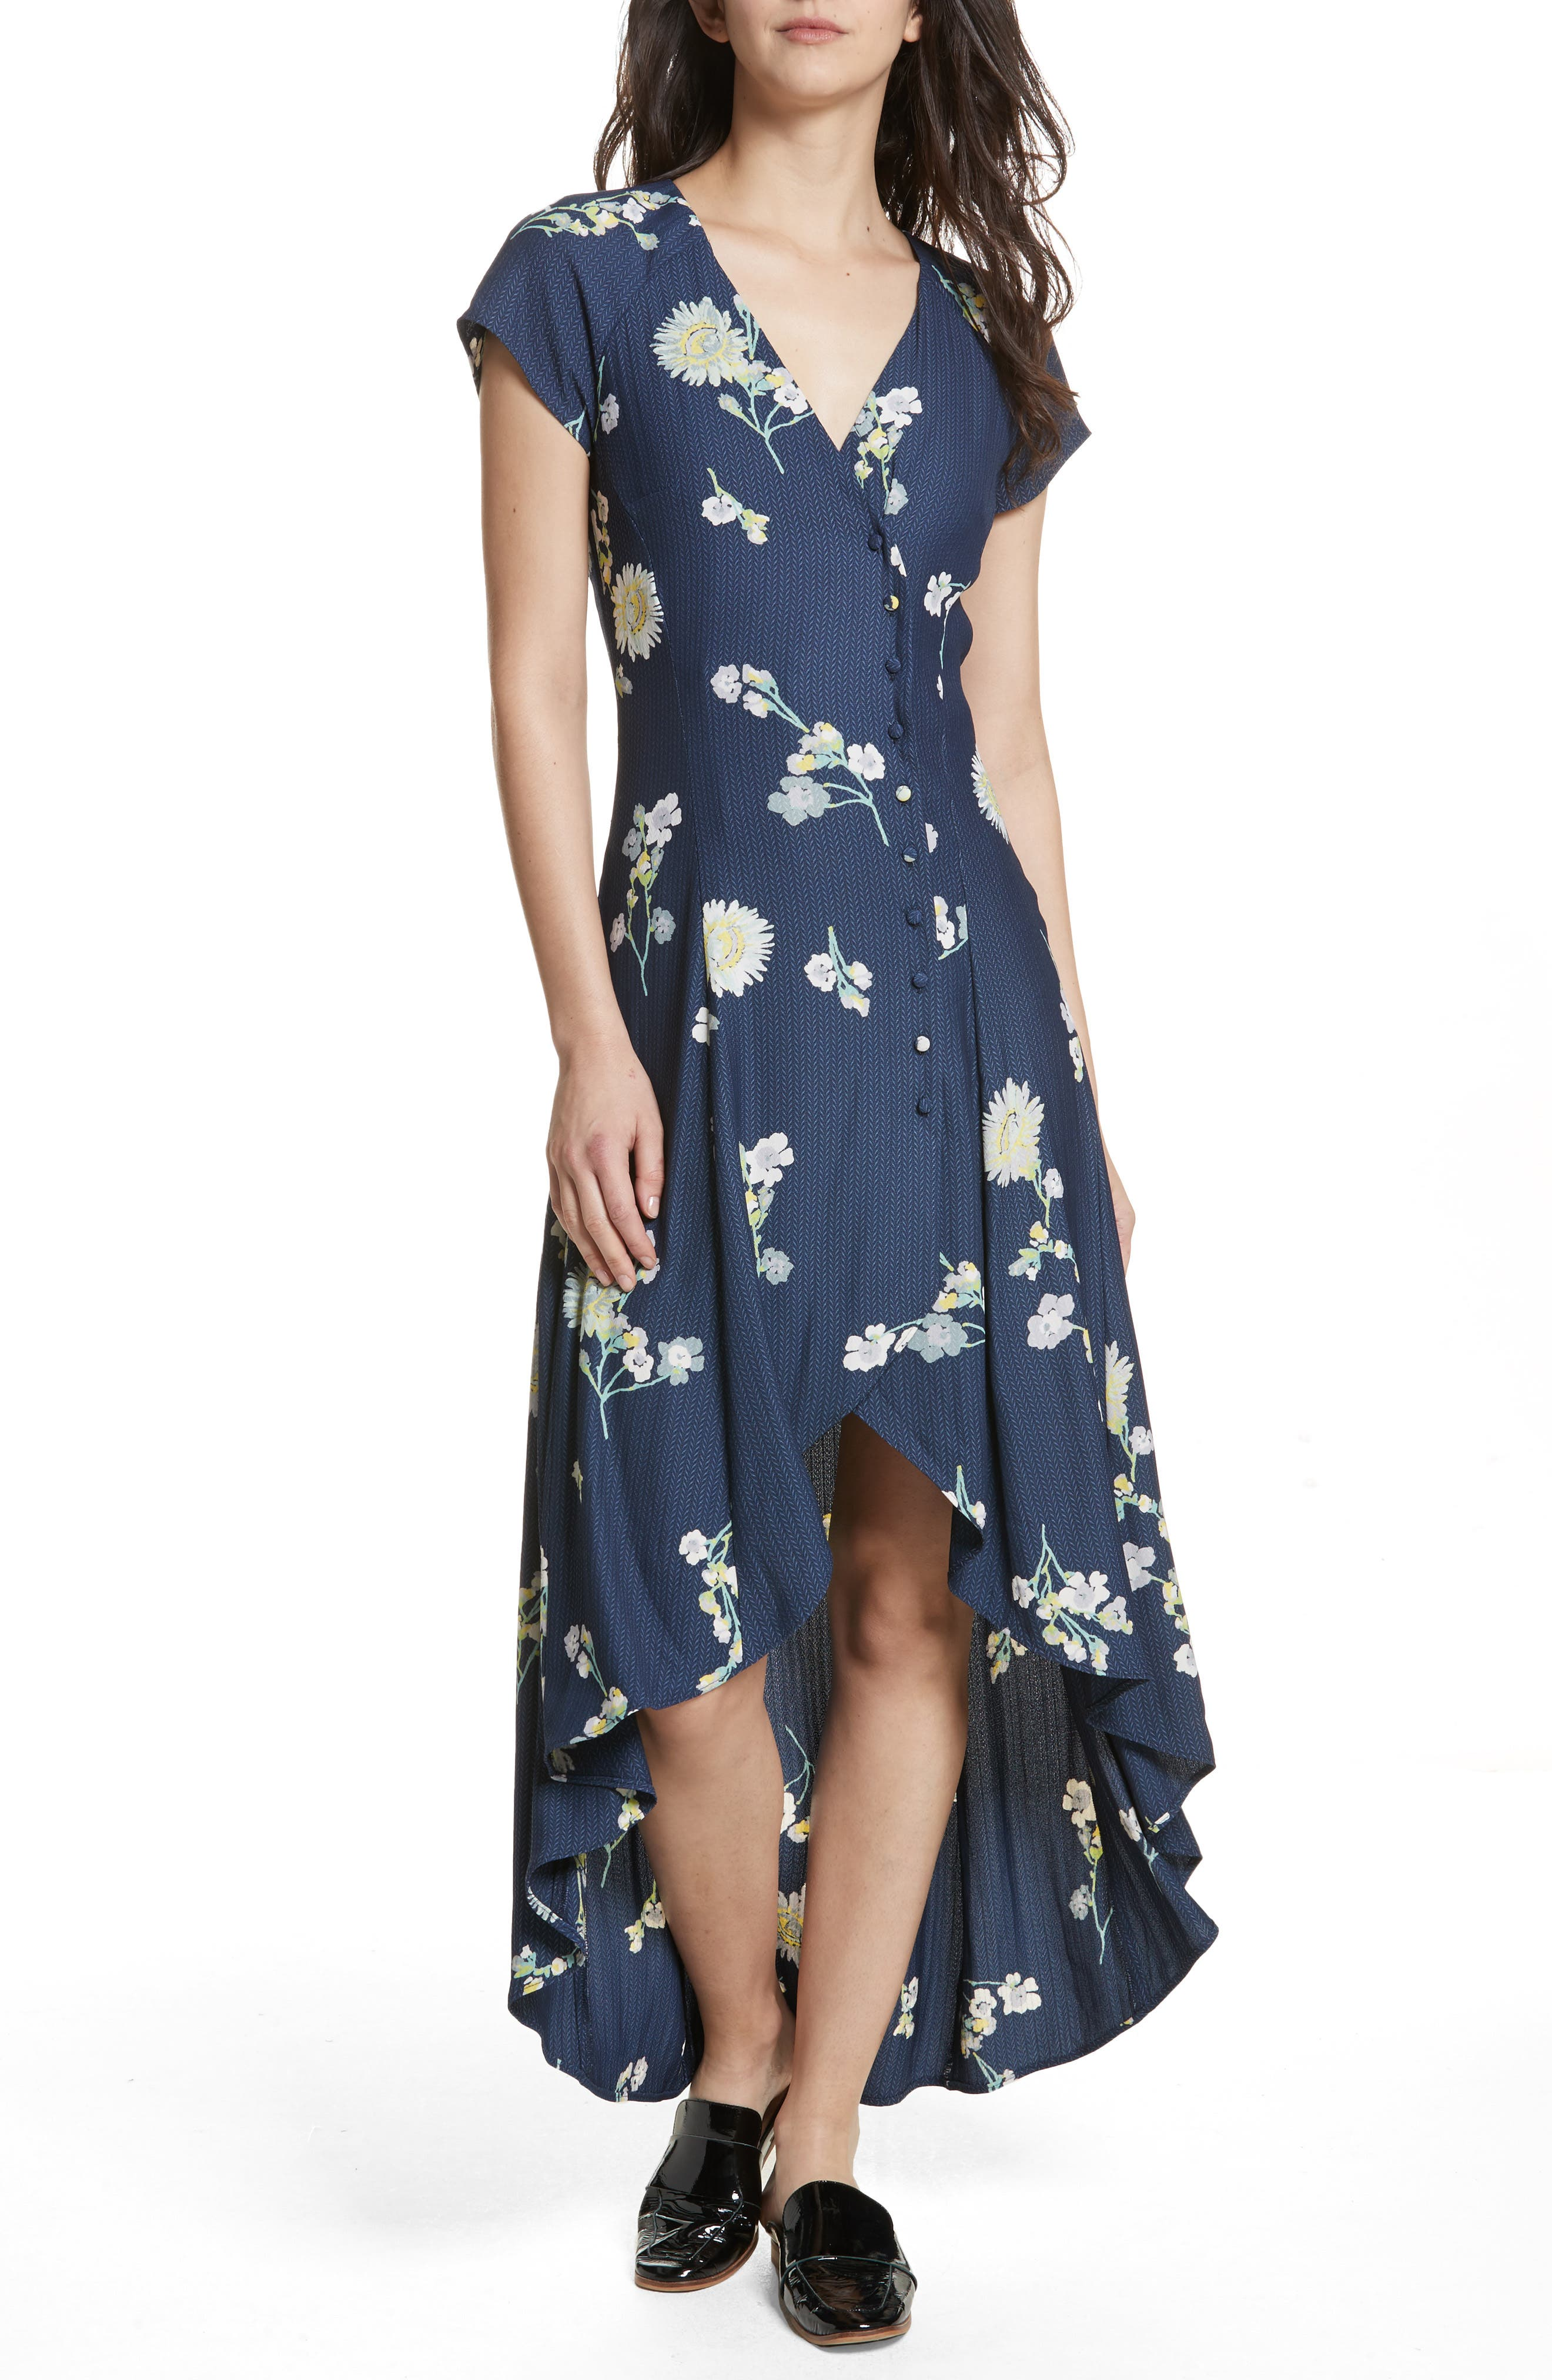 Lost in You Midi Dress,                             Alternate thumbnail 7, color,                             Blue Combo